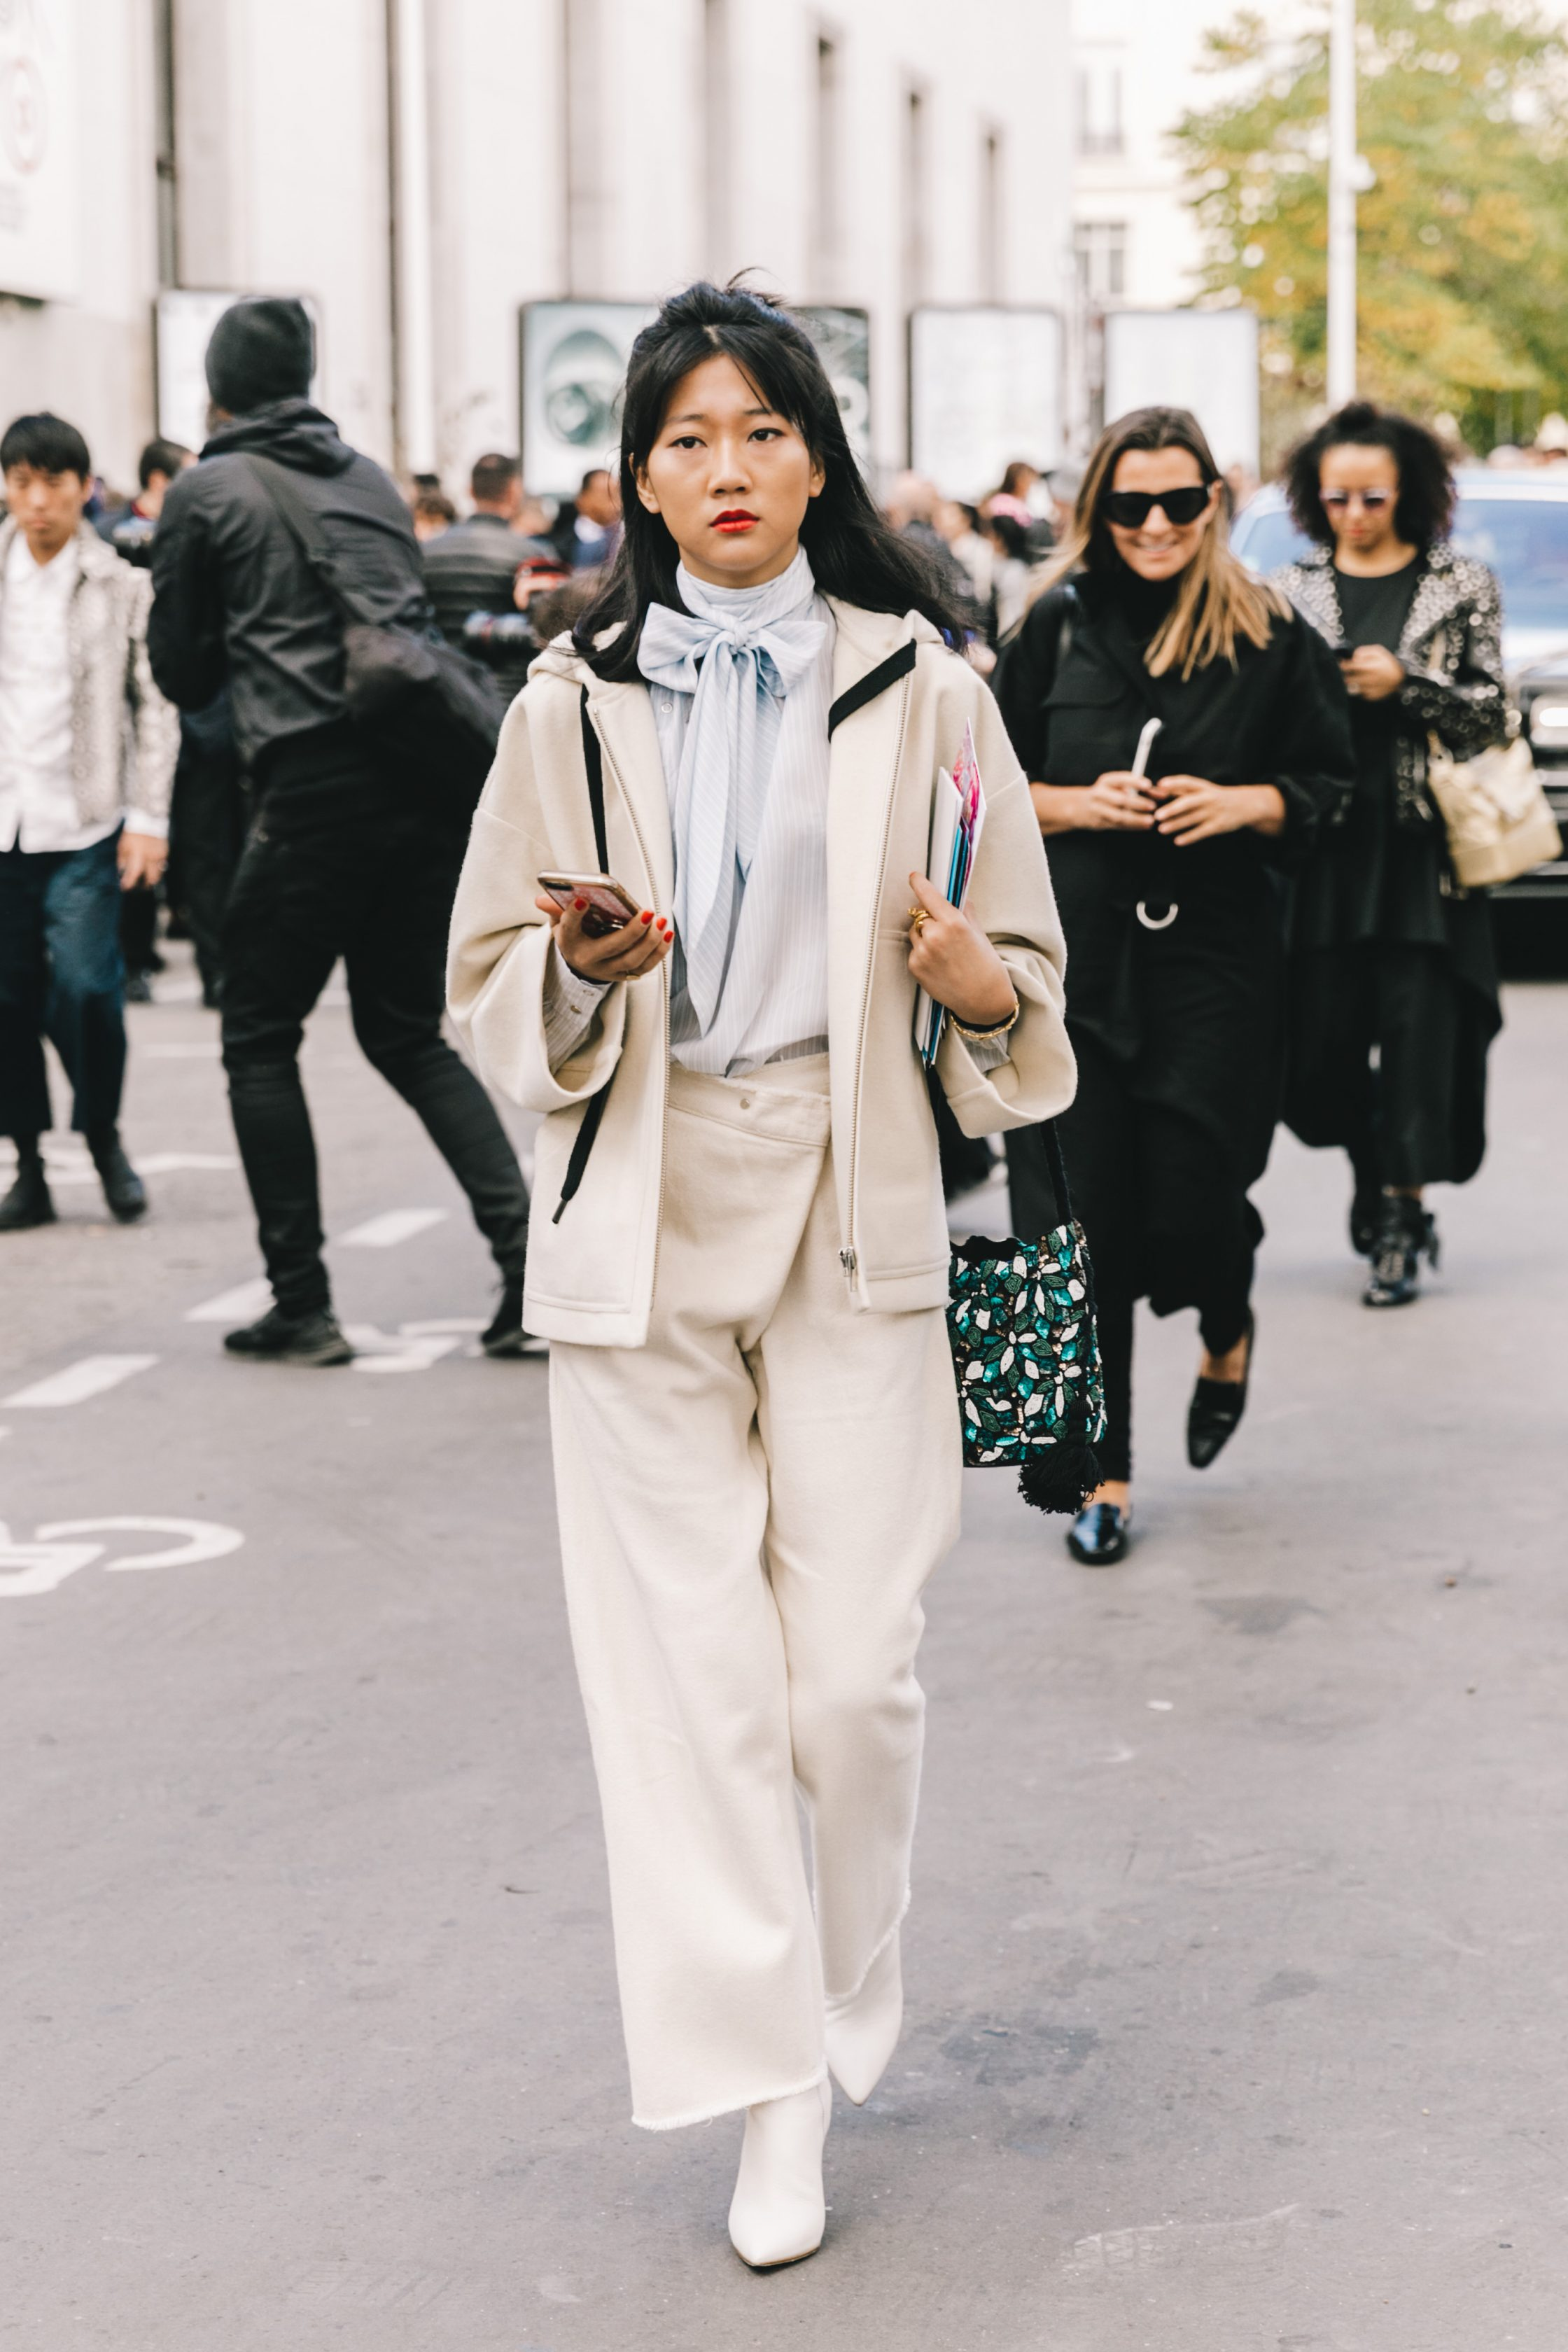 Street Style at Paris Fashion Week 19 by Collage Vintage